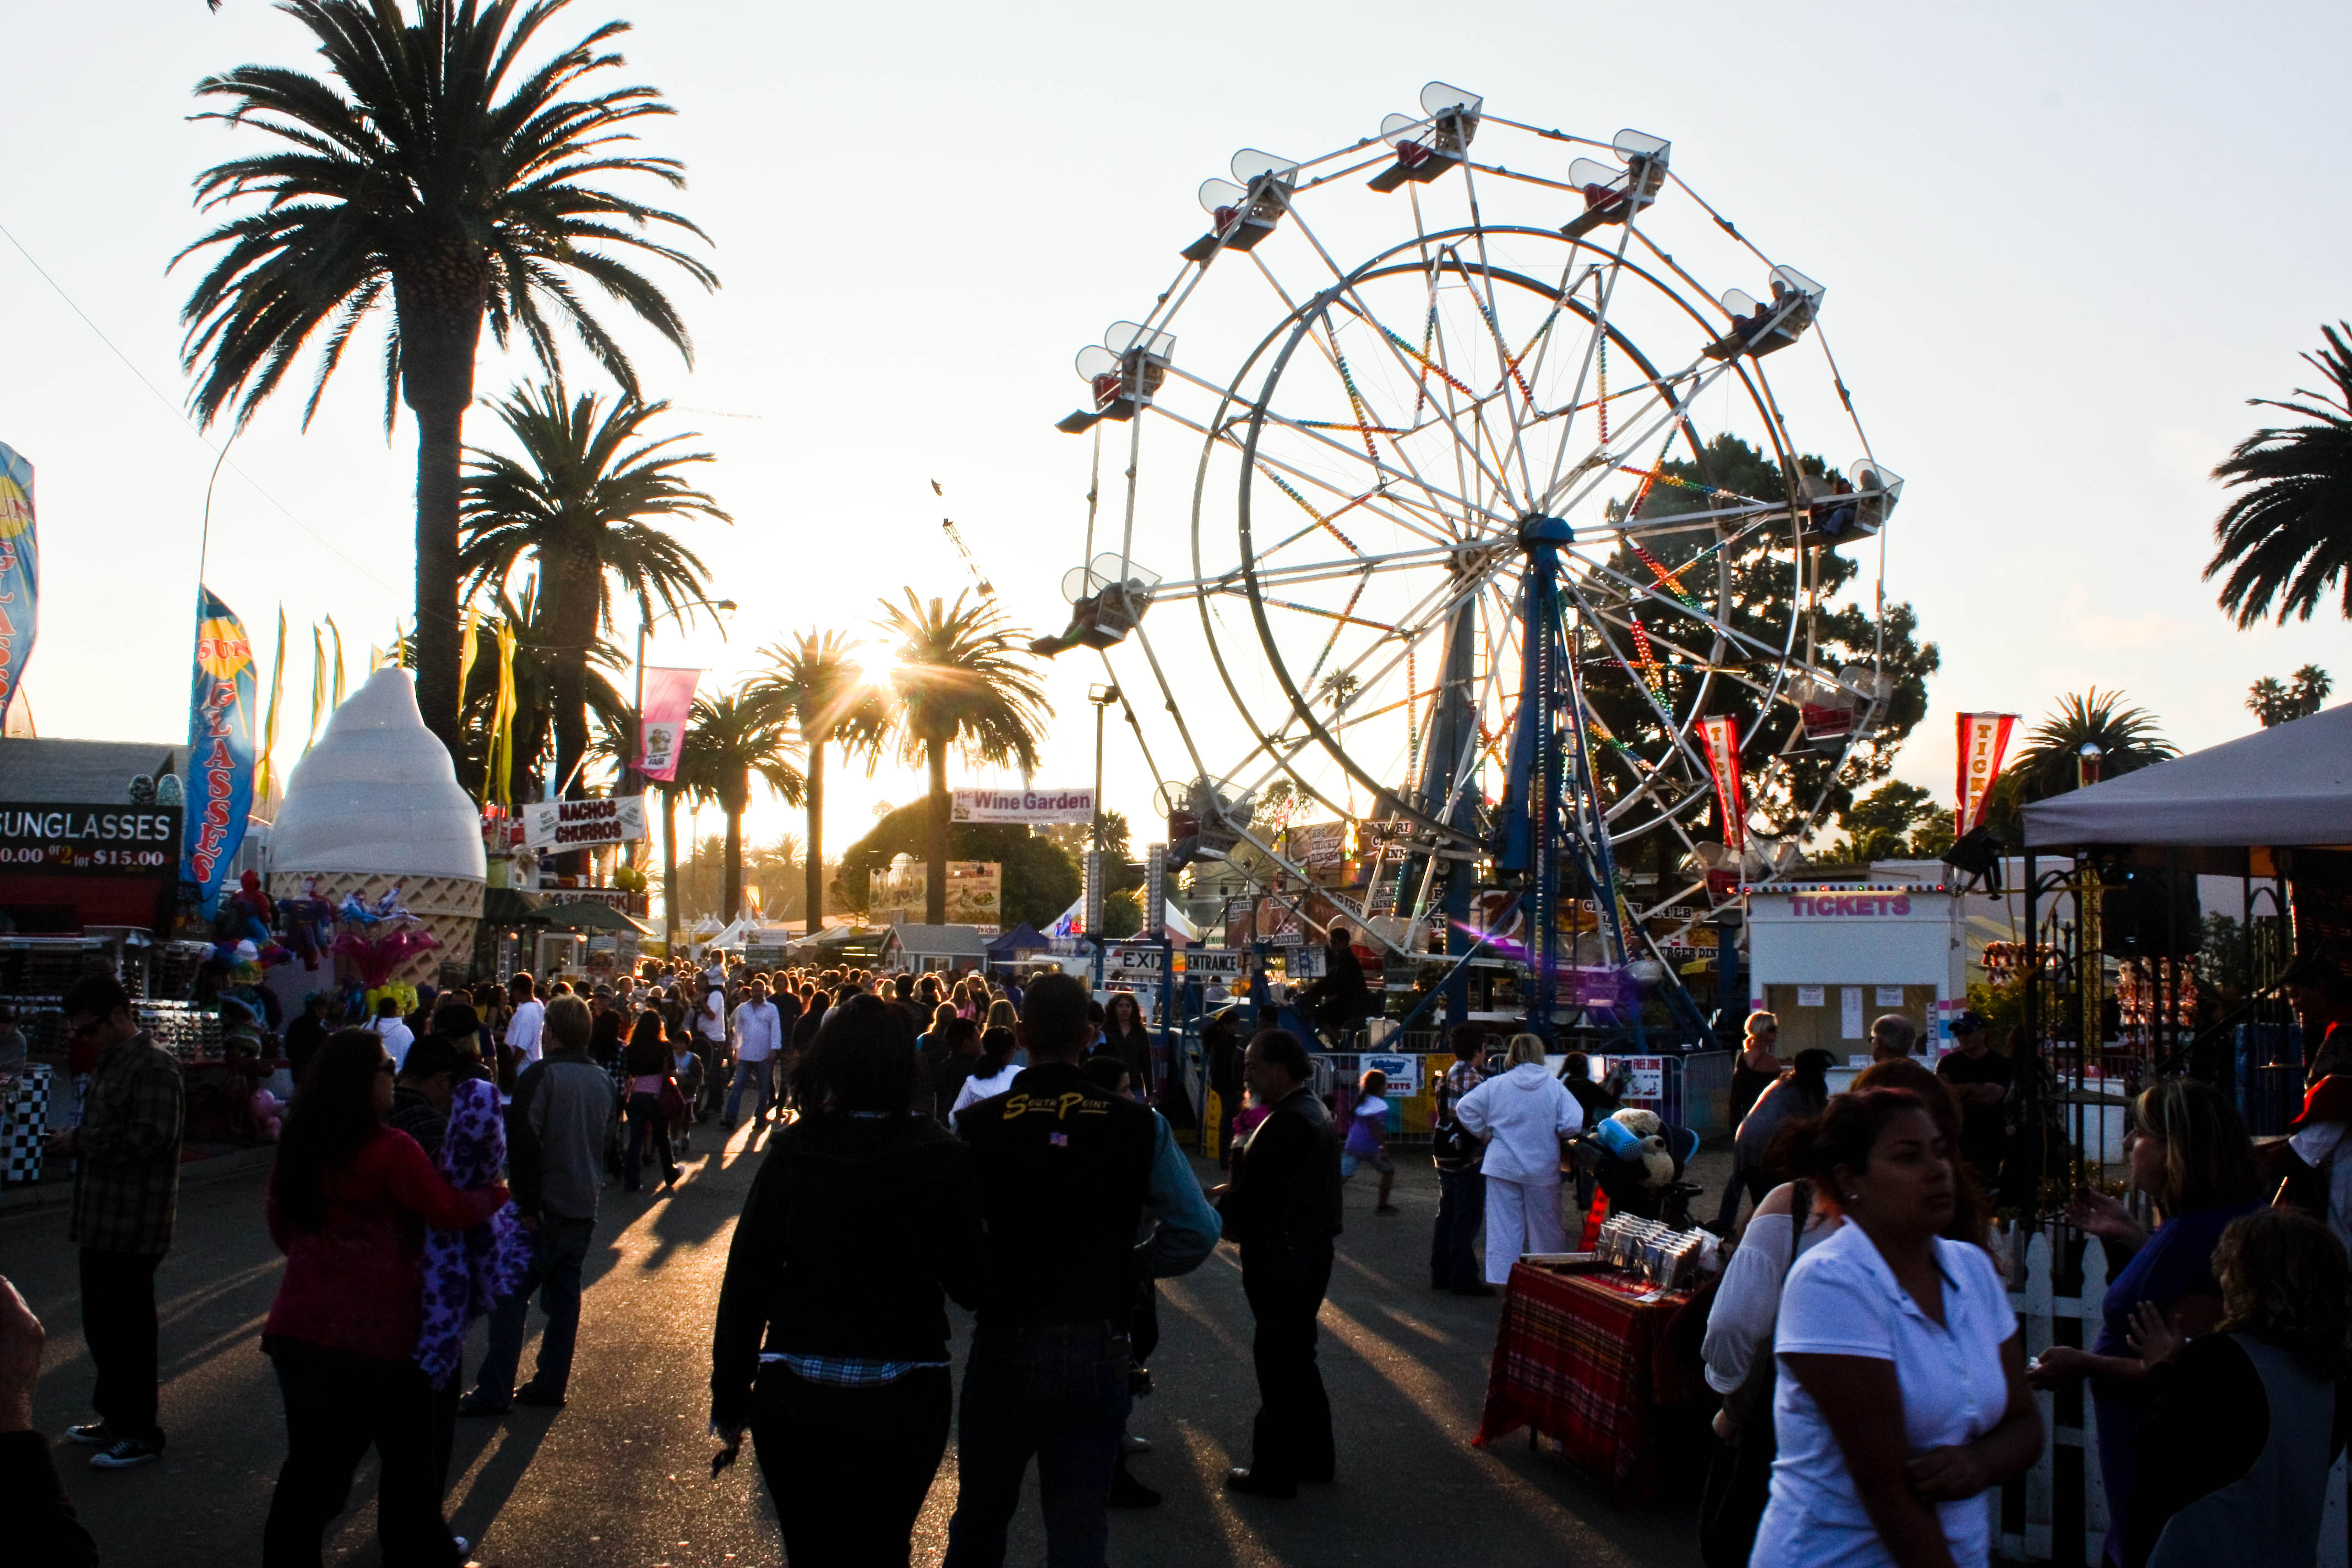 The California State Fair, which is held annually in Sacramento, is an amazingly popular event that brings almost million people each year, with attendance records generally going up from year to year.